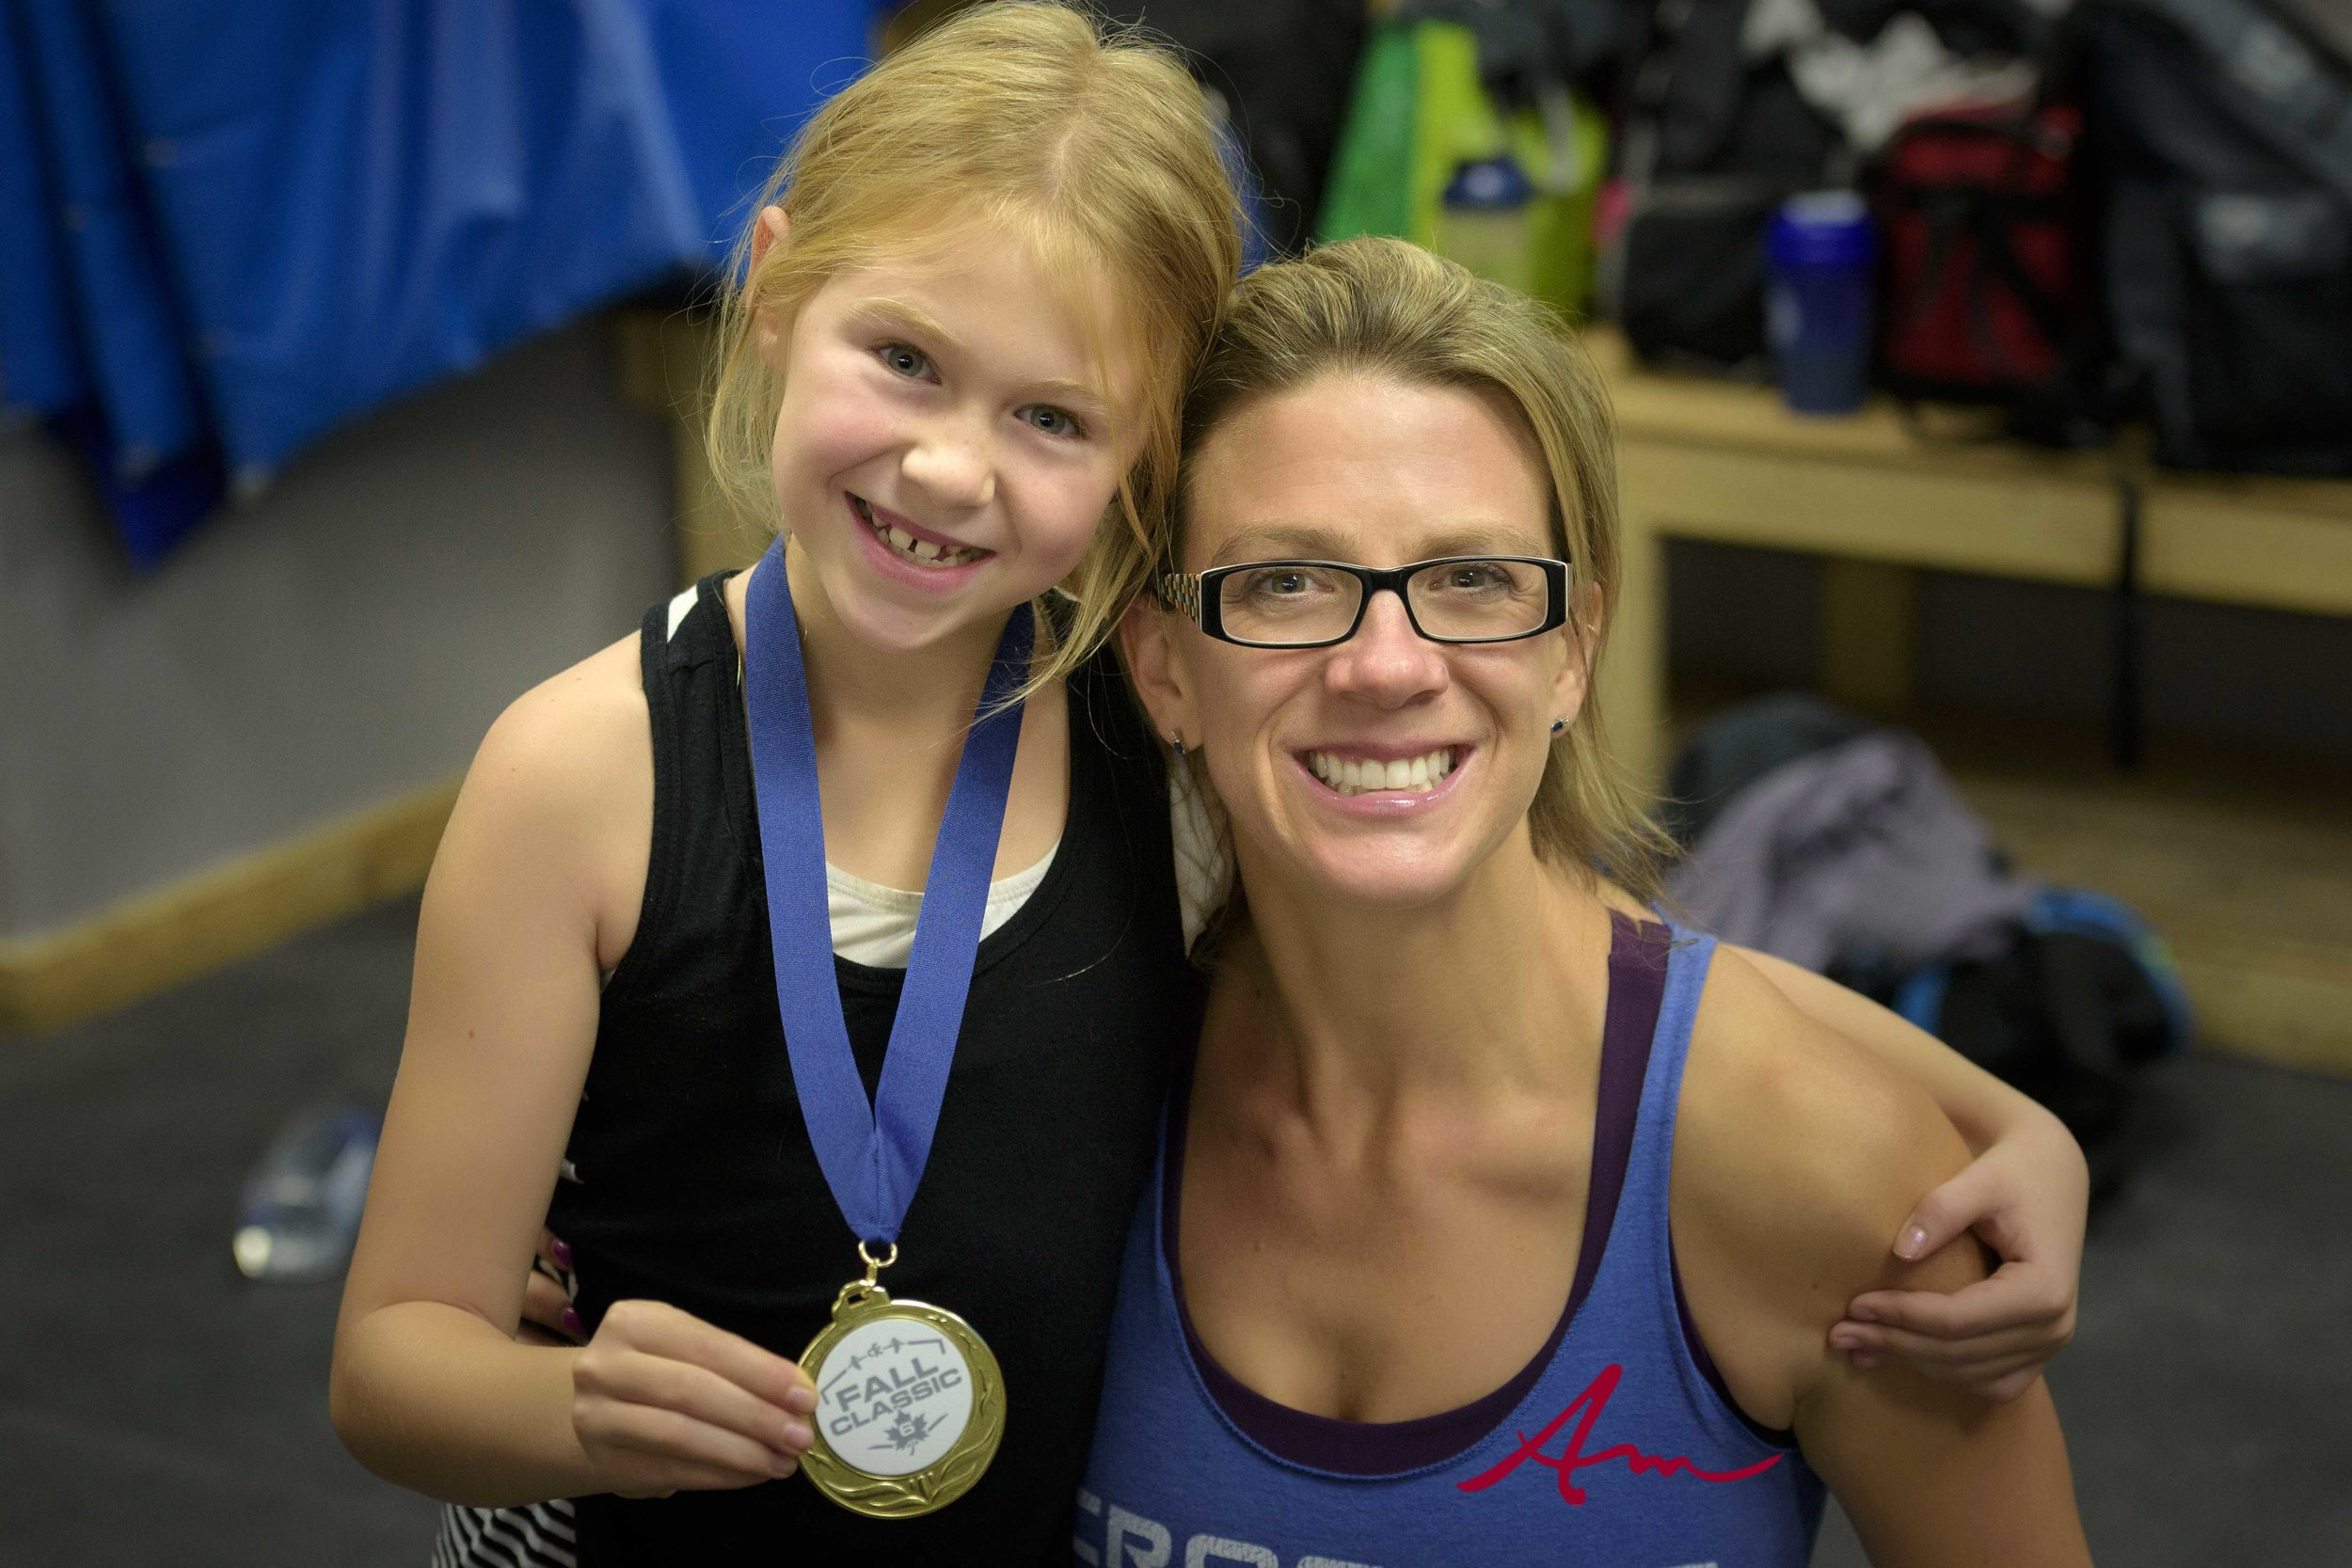 Sophia and I were both extremely proud of Kate the day she took 1st place in a local CrossFit competition.